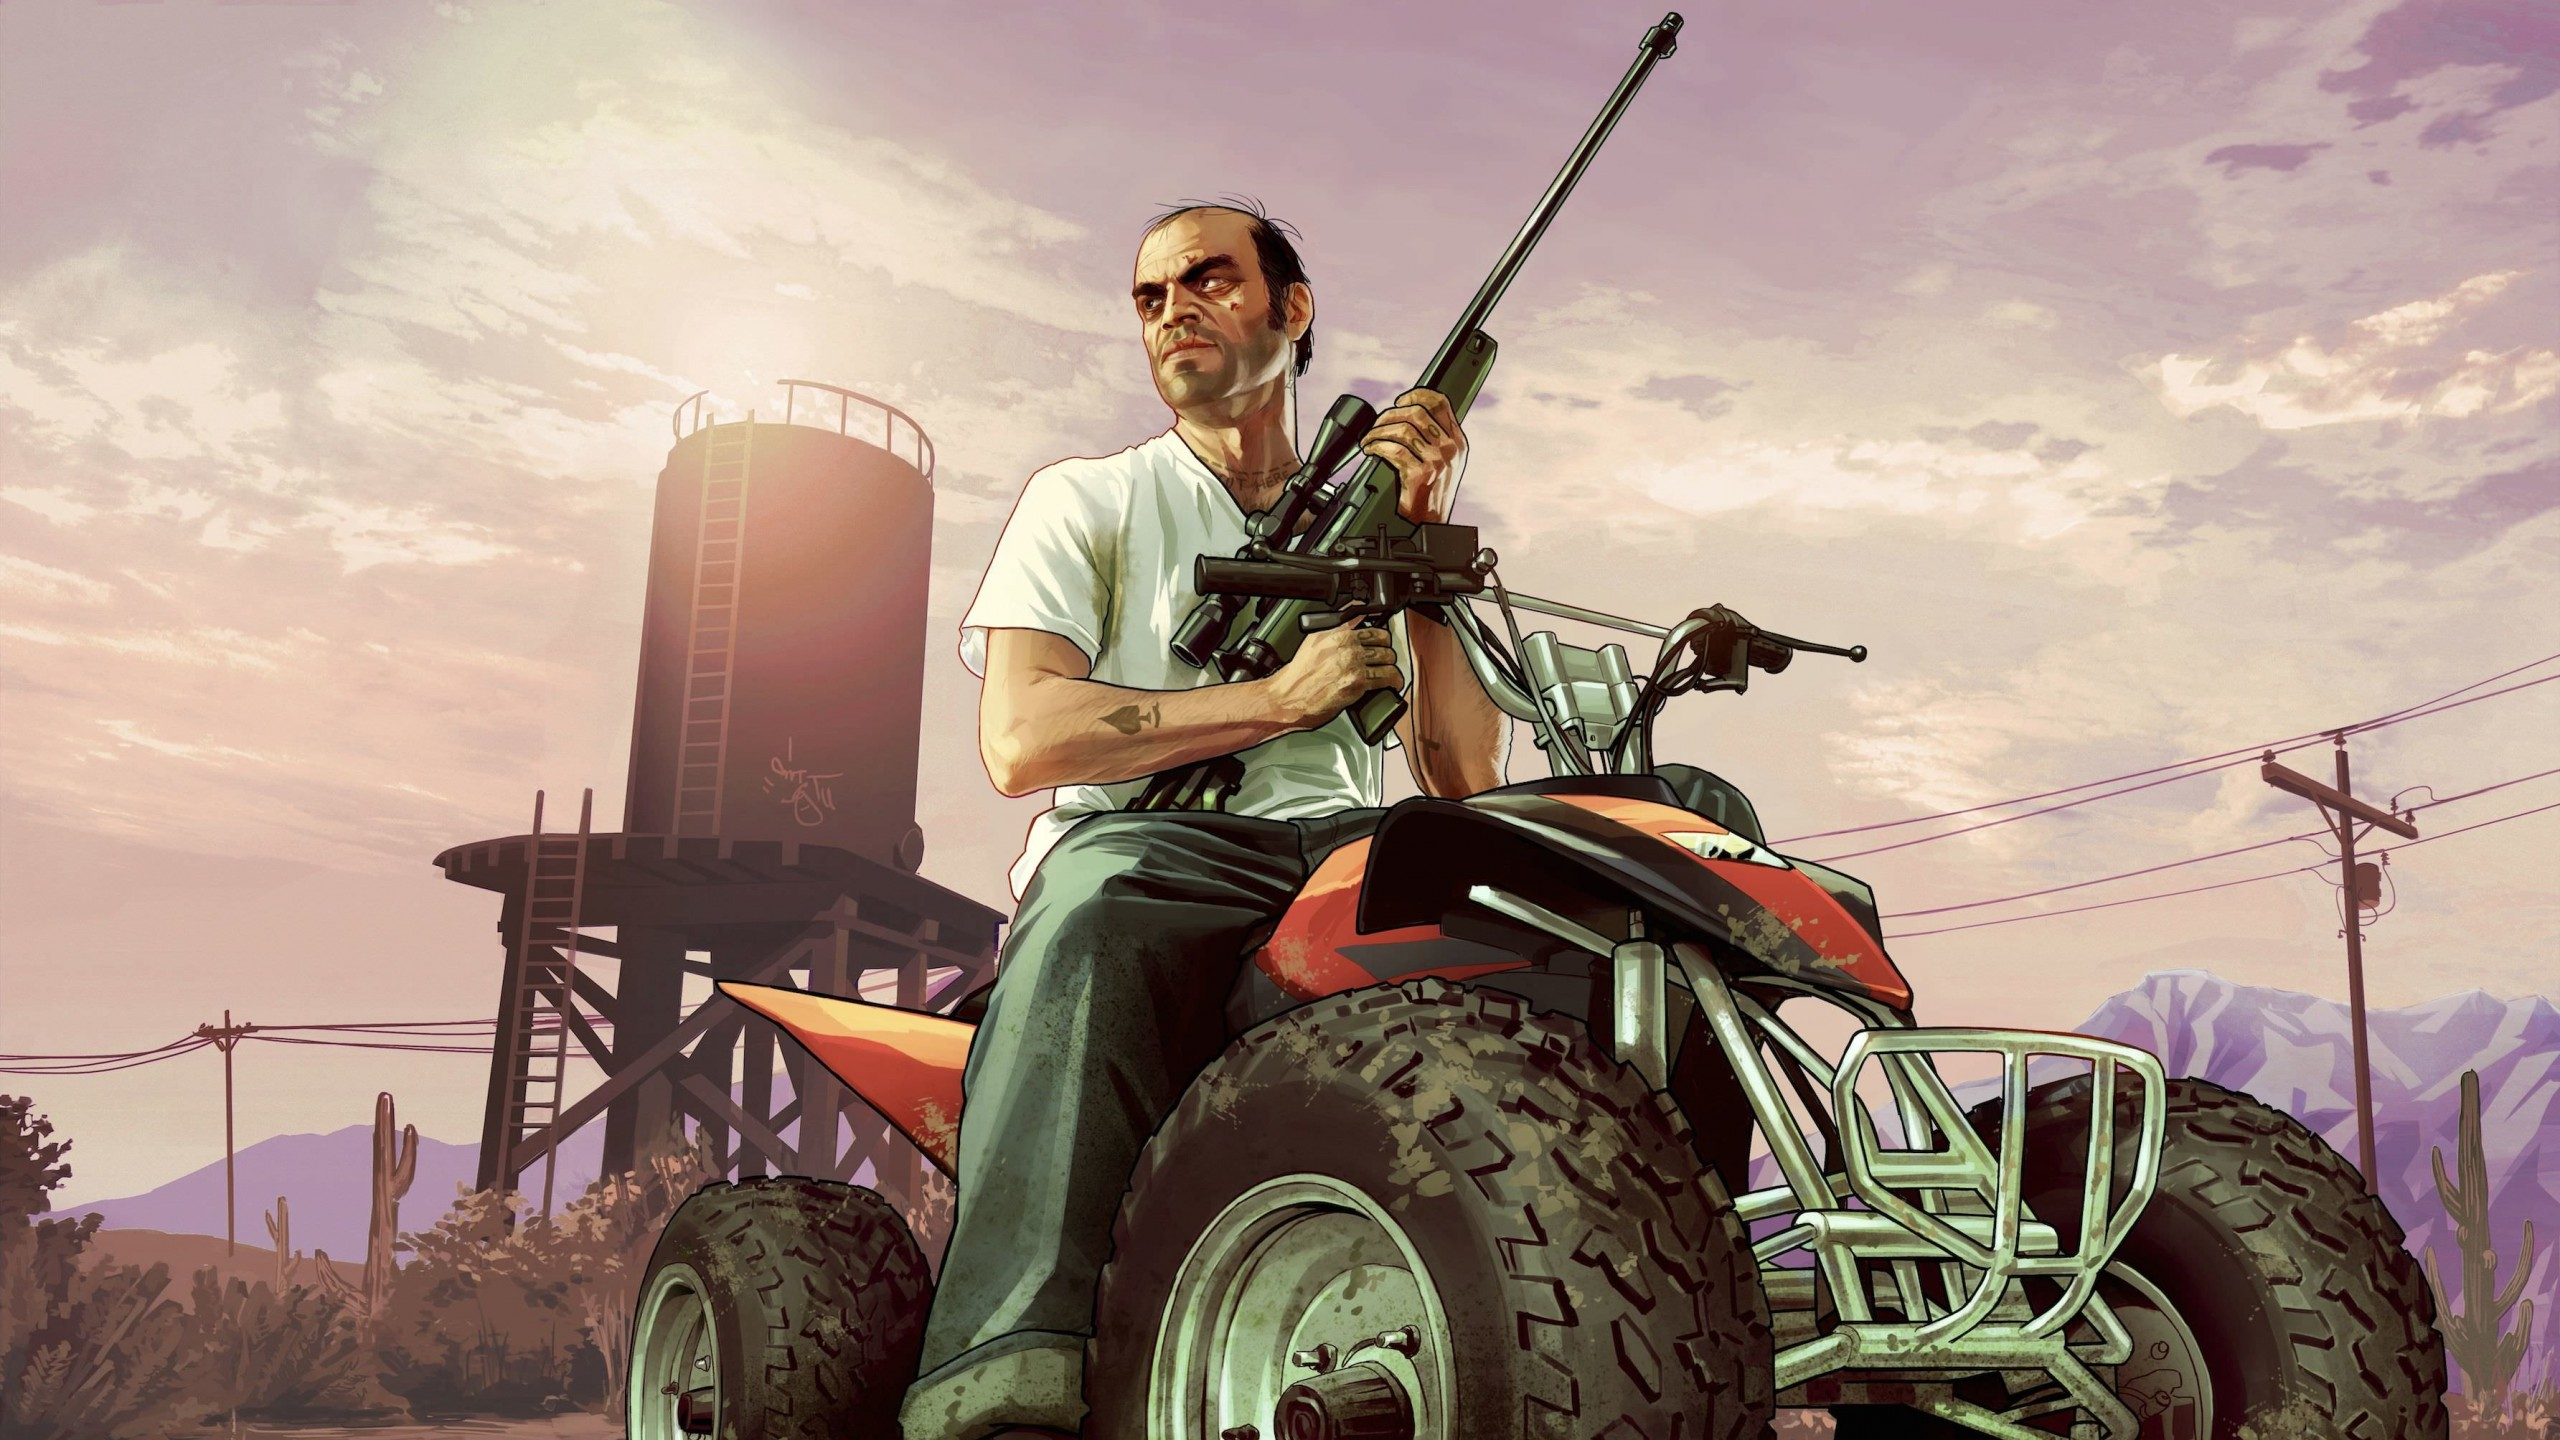 GTA 5 : Trevor Philips Wallpaper for Social Media YouTube Channel Art